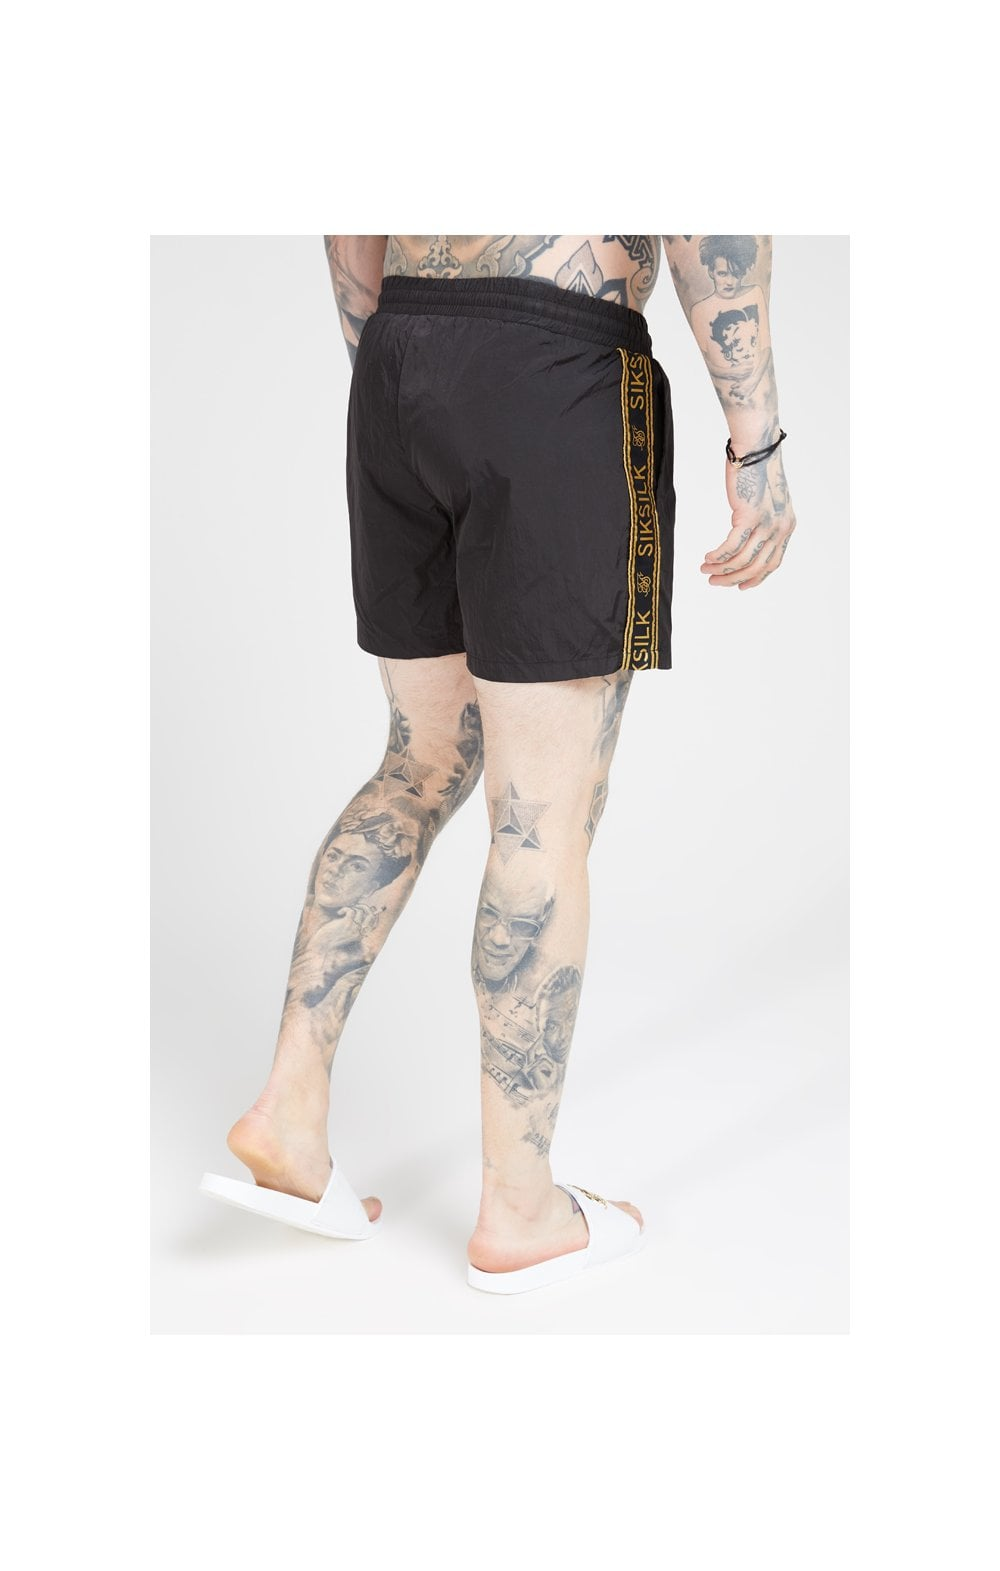 Load image into Gallery viewer, SikSilk Crushed Nylon Tape Shorts – Black & Gold (4)